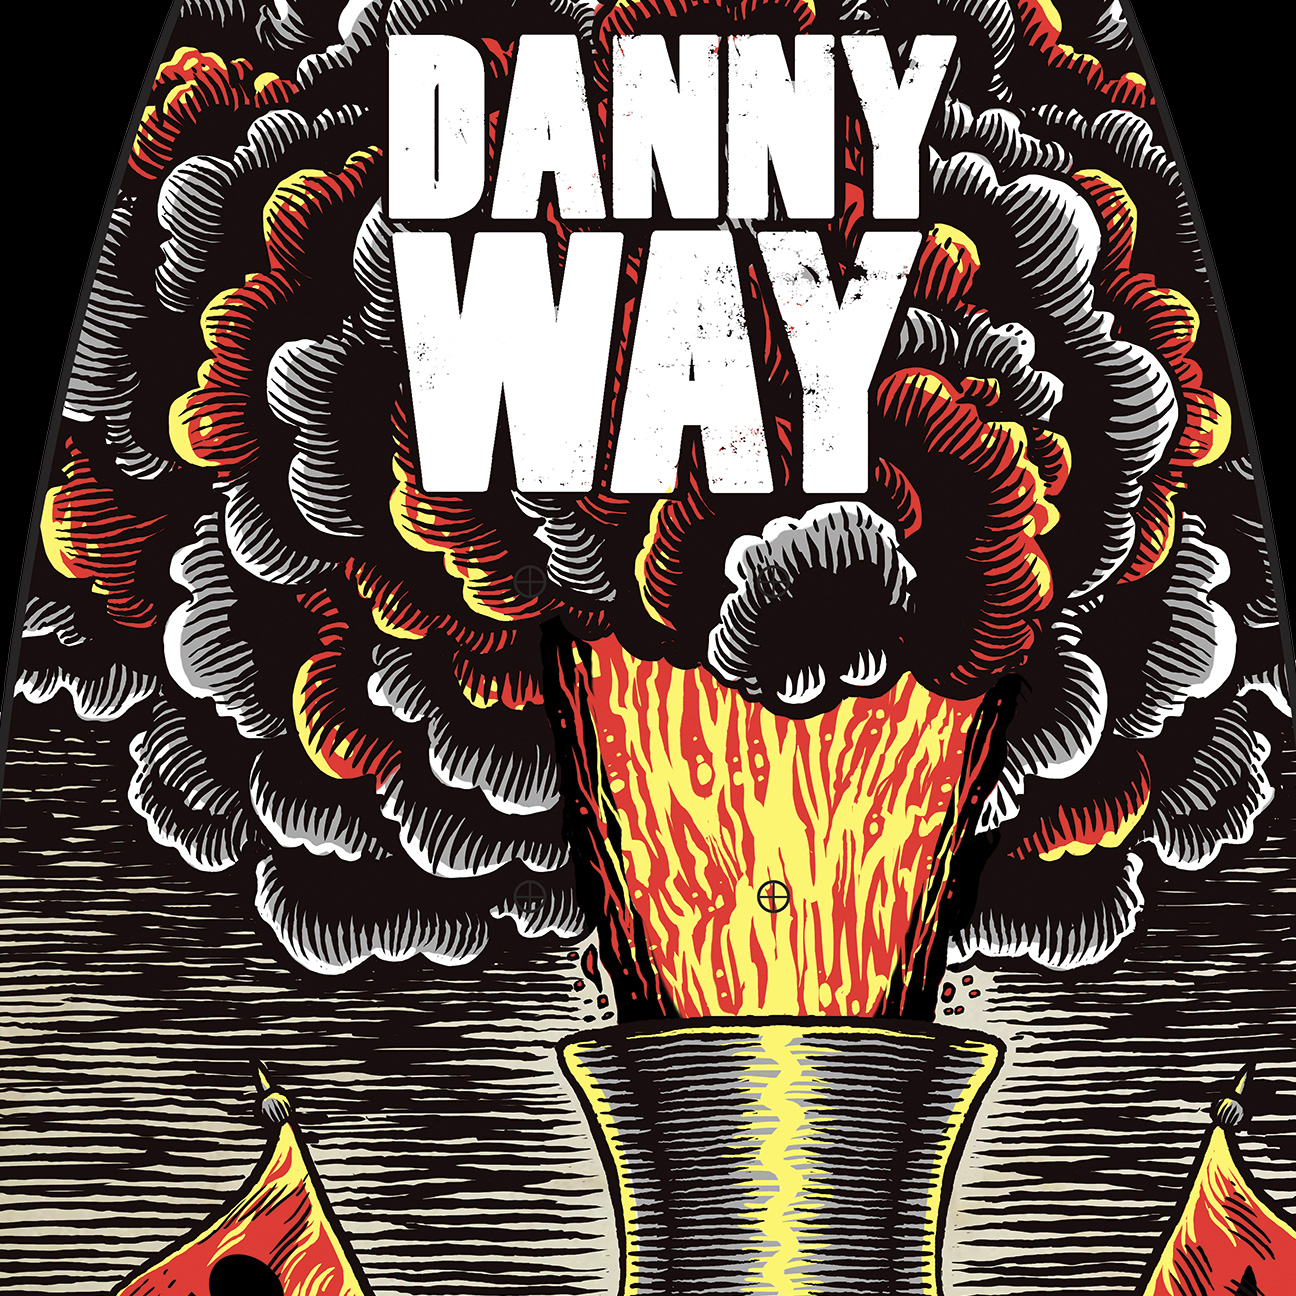 Danny Way Train, Fian_detail 3.jpg